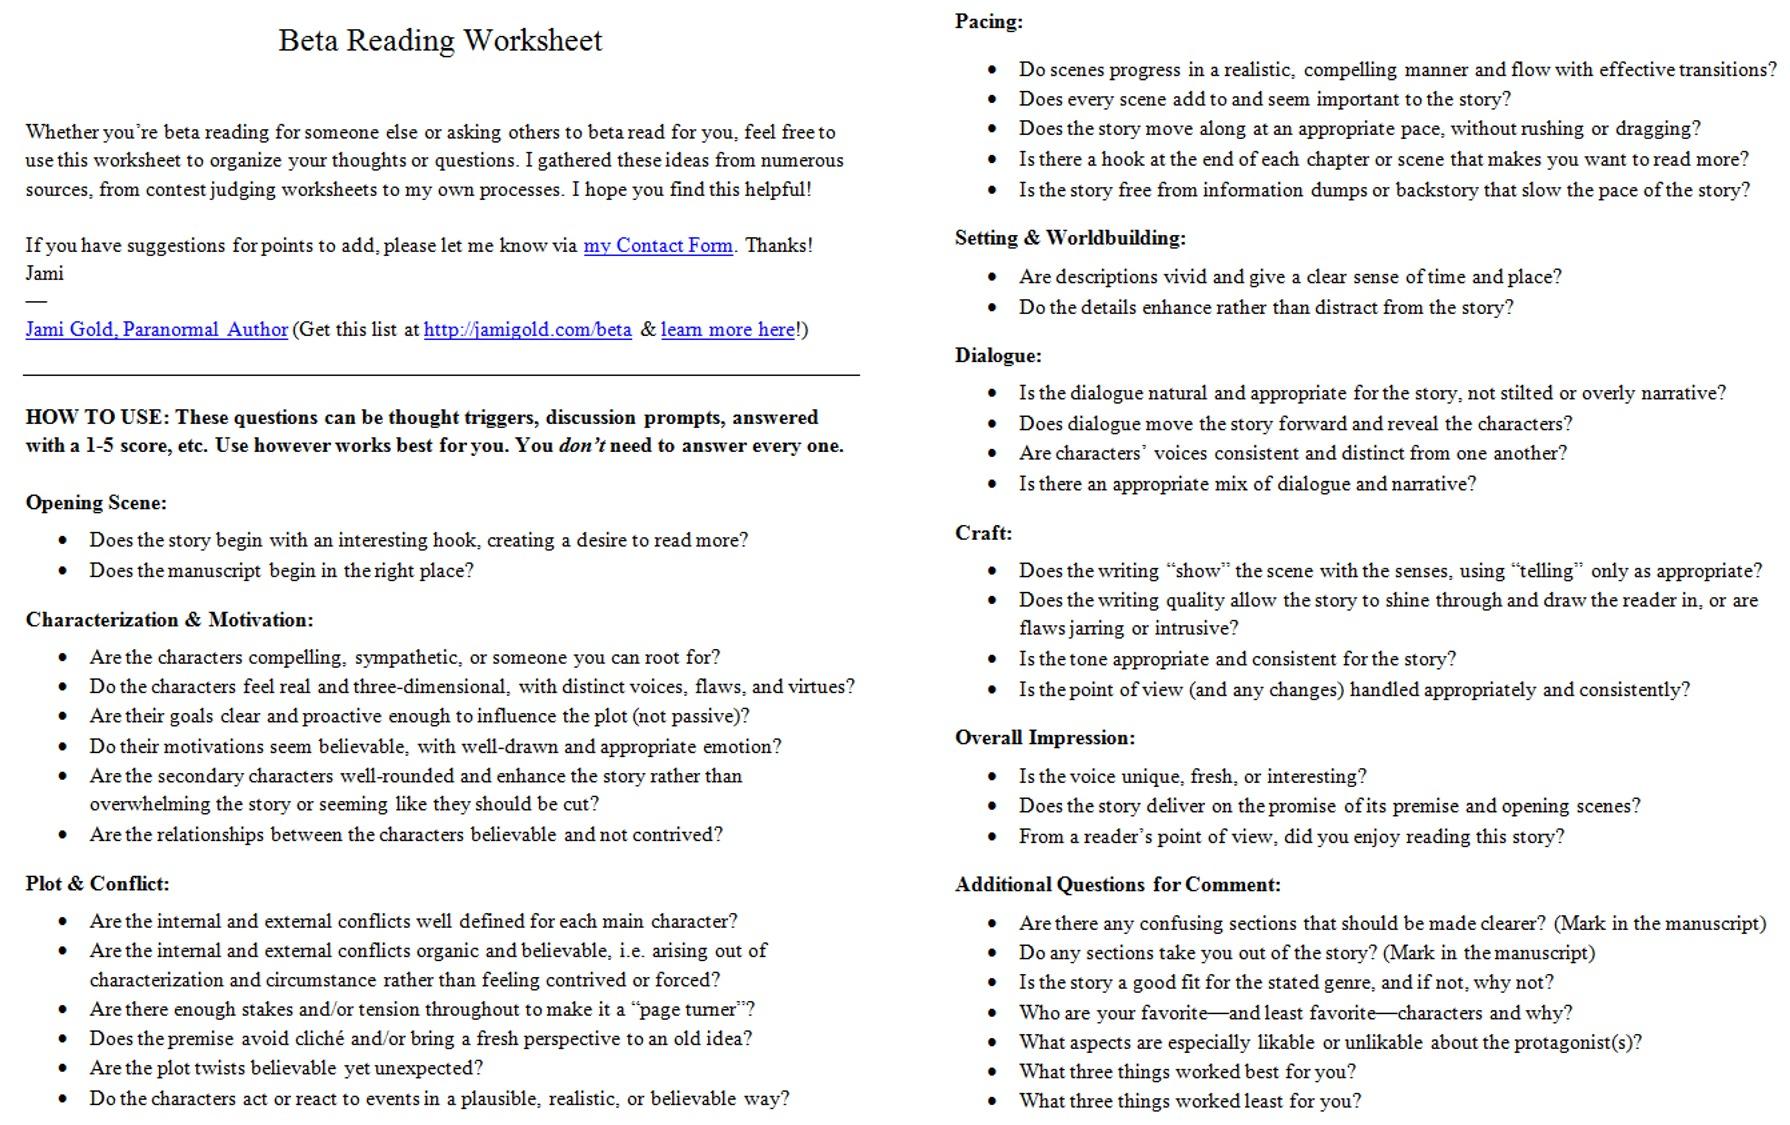 Weirdmailus  Personable Worksheets For Writers  Jami Gold Paranormal Author With Magnificent Screen Shot Of The Twopage Beta Reading Worksheet With Easy On The Eye Solving By Substitution Worksheet Also Worksheet On Stoichiometry In Addition Transformations Geometry Worksheet And Word Problems Grade  Worksheets As Well As Primary Maths Worksheets Free Printable Additionally Vectors Physics Worksheet From Jamigoldcom With Weirdmailus  Magnificent Worksheets For Writers  Jami Gold Paranormal Author With Easy On The Eye Screen Shot Of The Twopage Beta Reading Worksheet And Personable Solving By Substitution Worksheet Also Worksheet On Stoichiometry In Addition Transformations Geometry Worksheet From Jamigoldcom